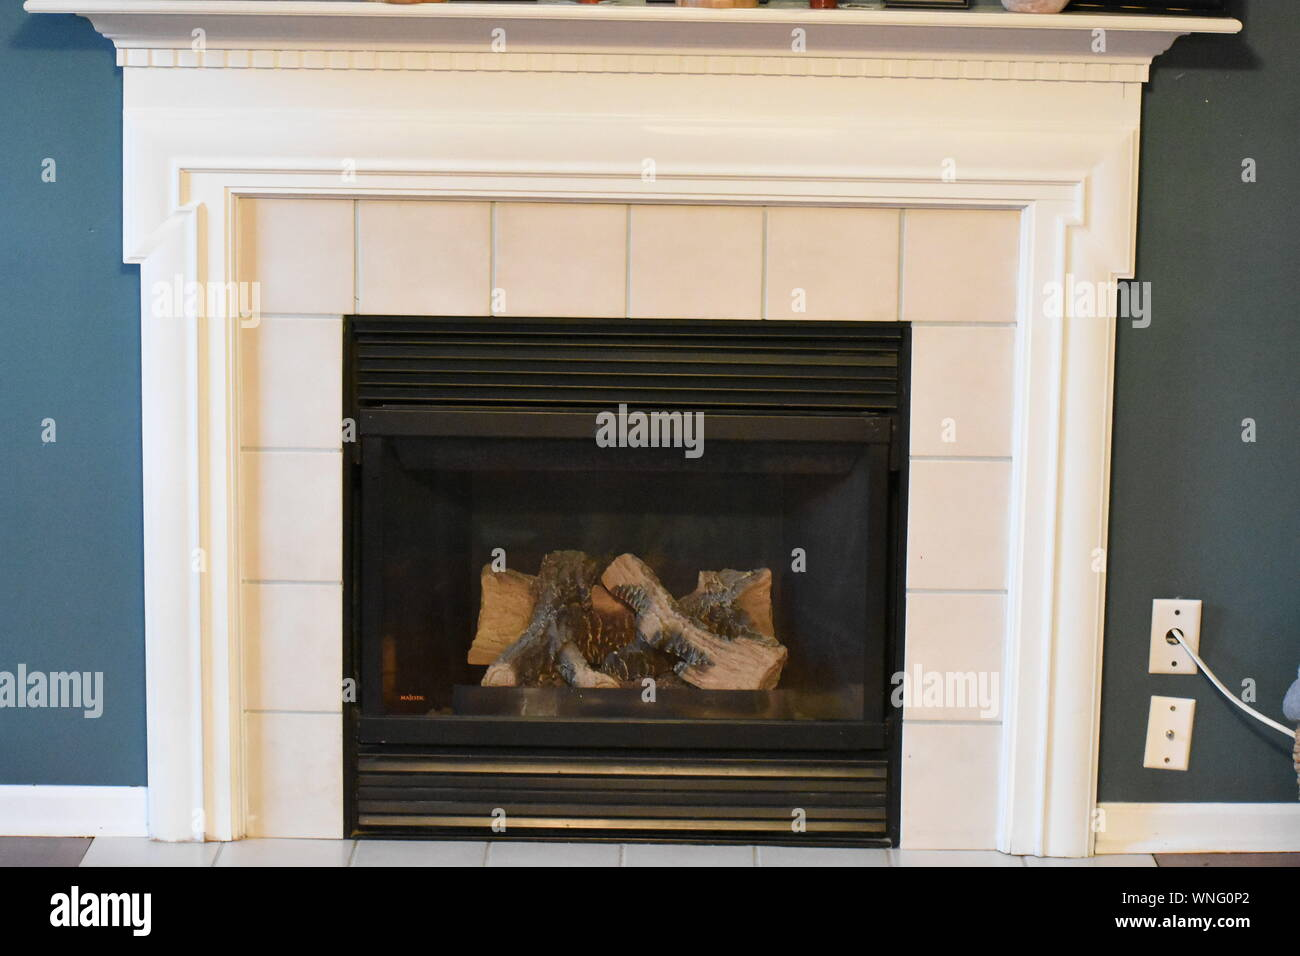 Fire Place With White Mantle And Tile Surround Stock Photo